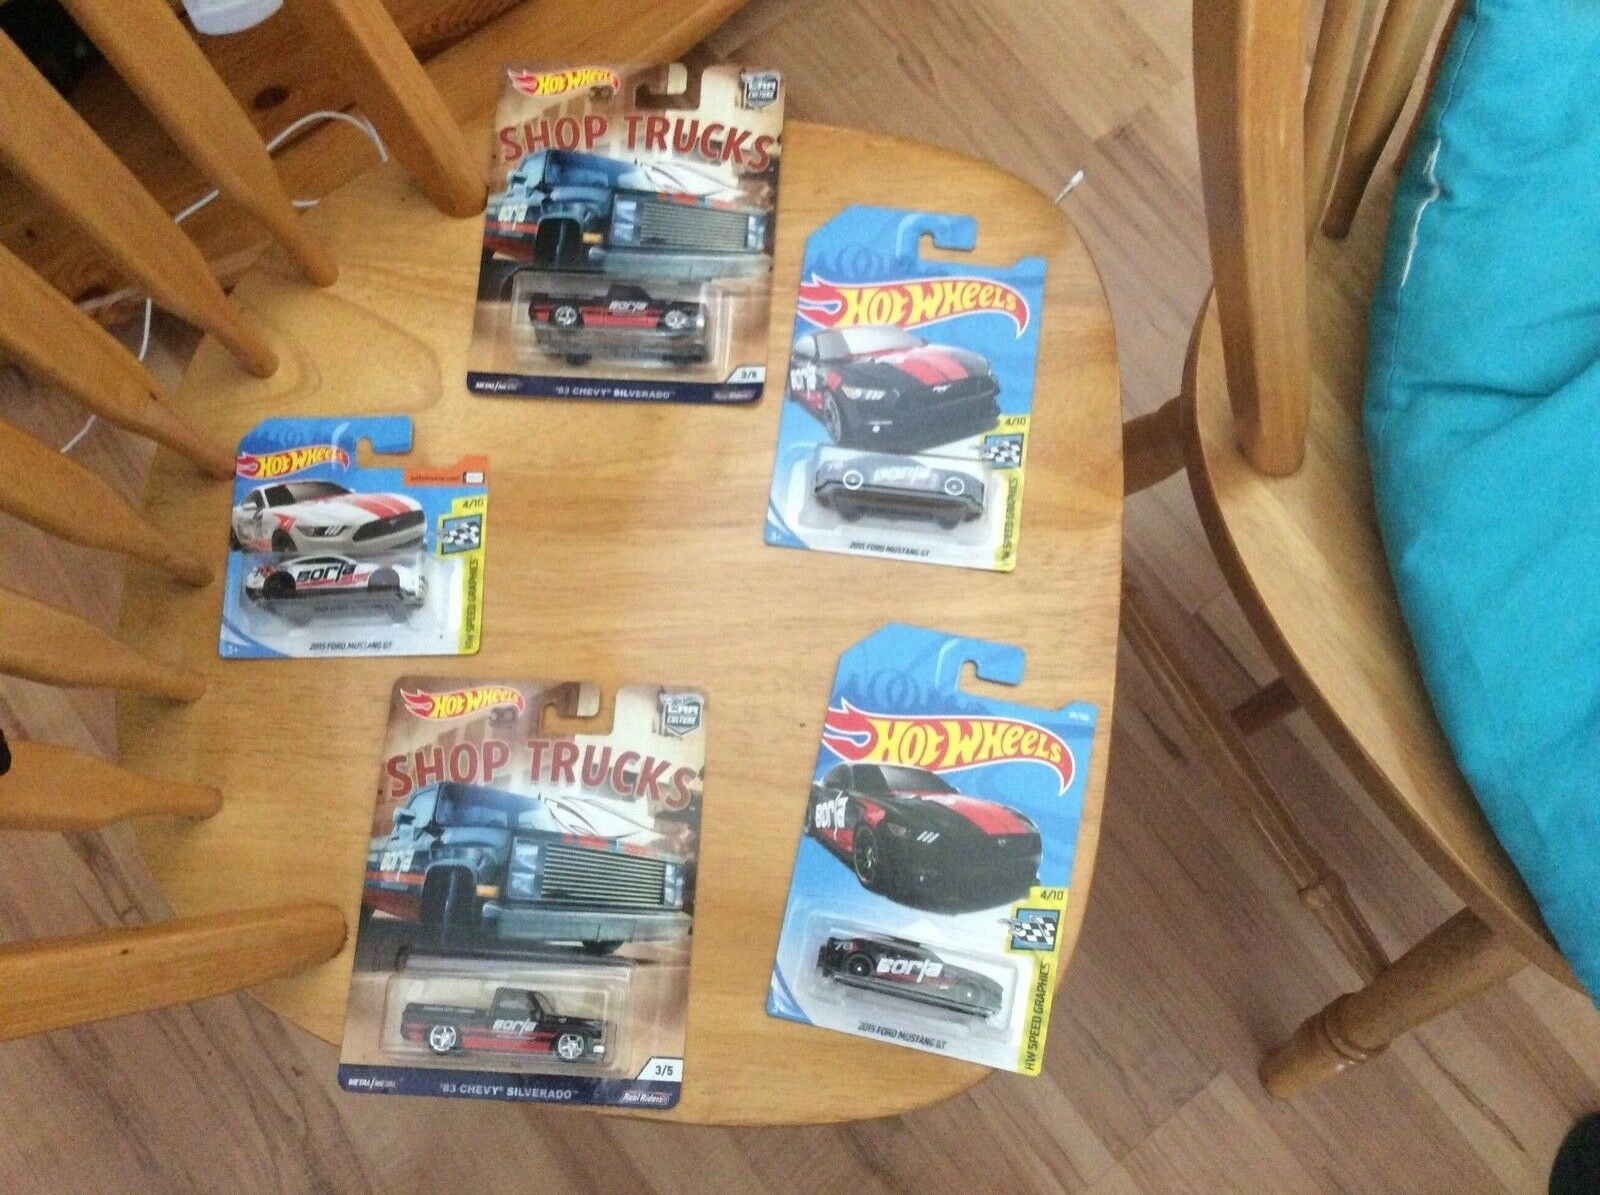 Hotwheels Borja set with STH, Error, Premium car and Mainlines VHTF MINTY